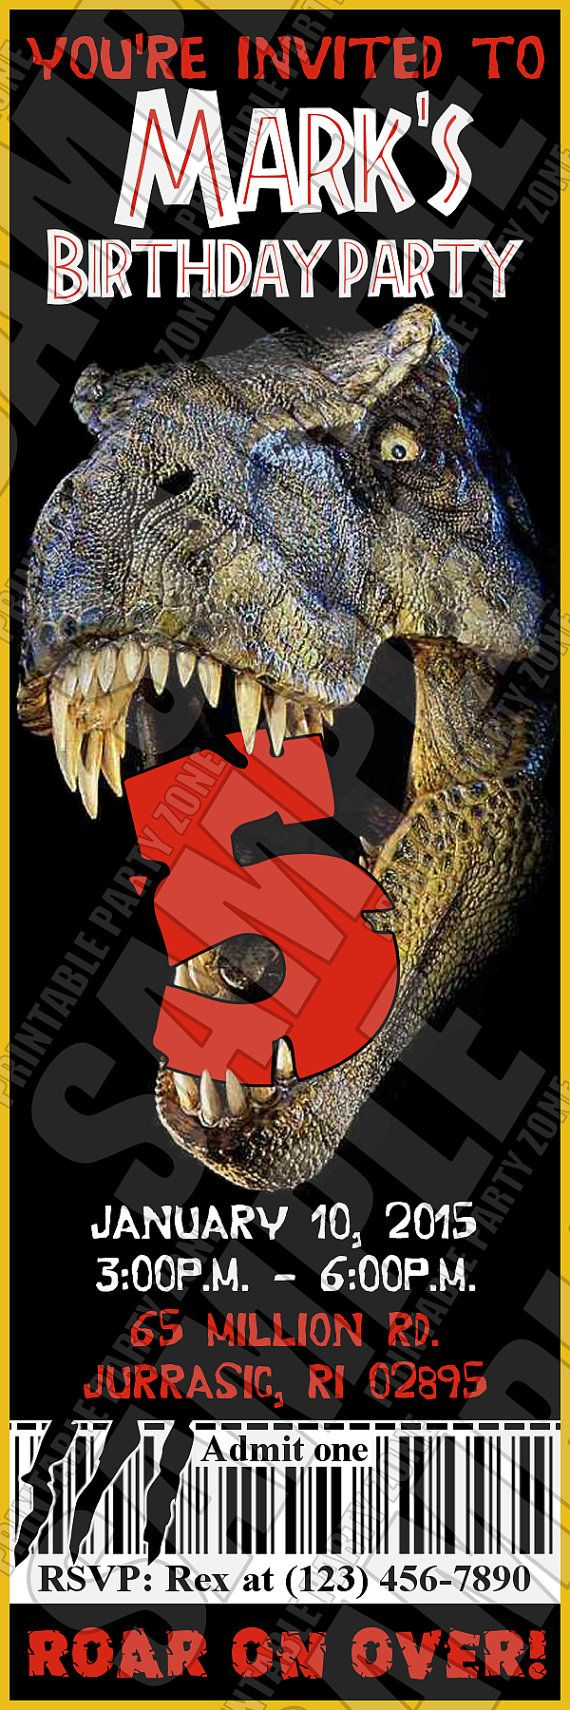 Jurassic Park Invite Printable Birthday Ticket Emailable Invite